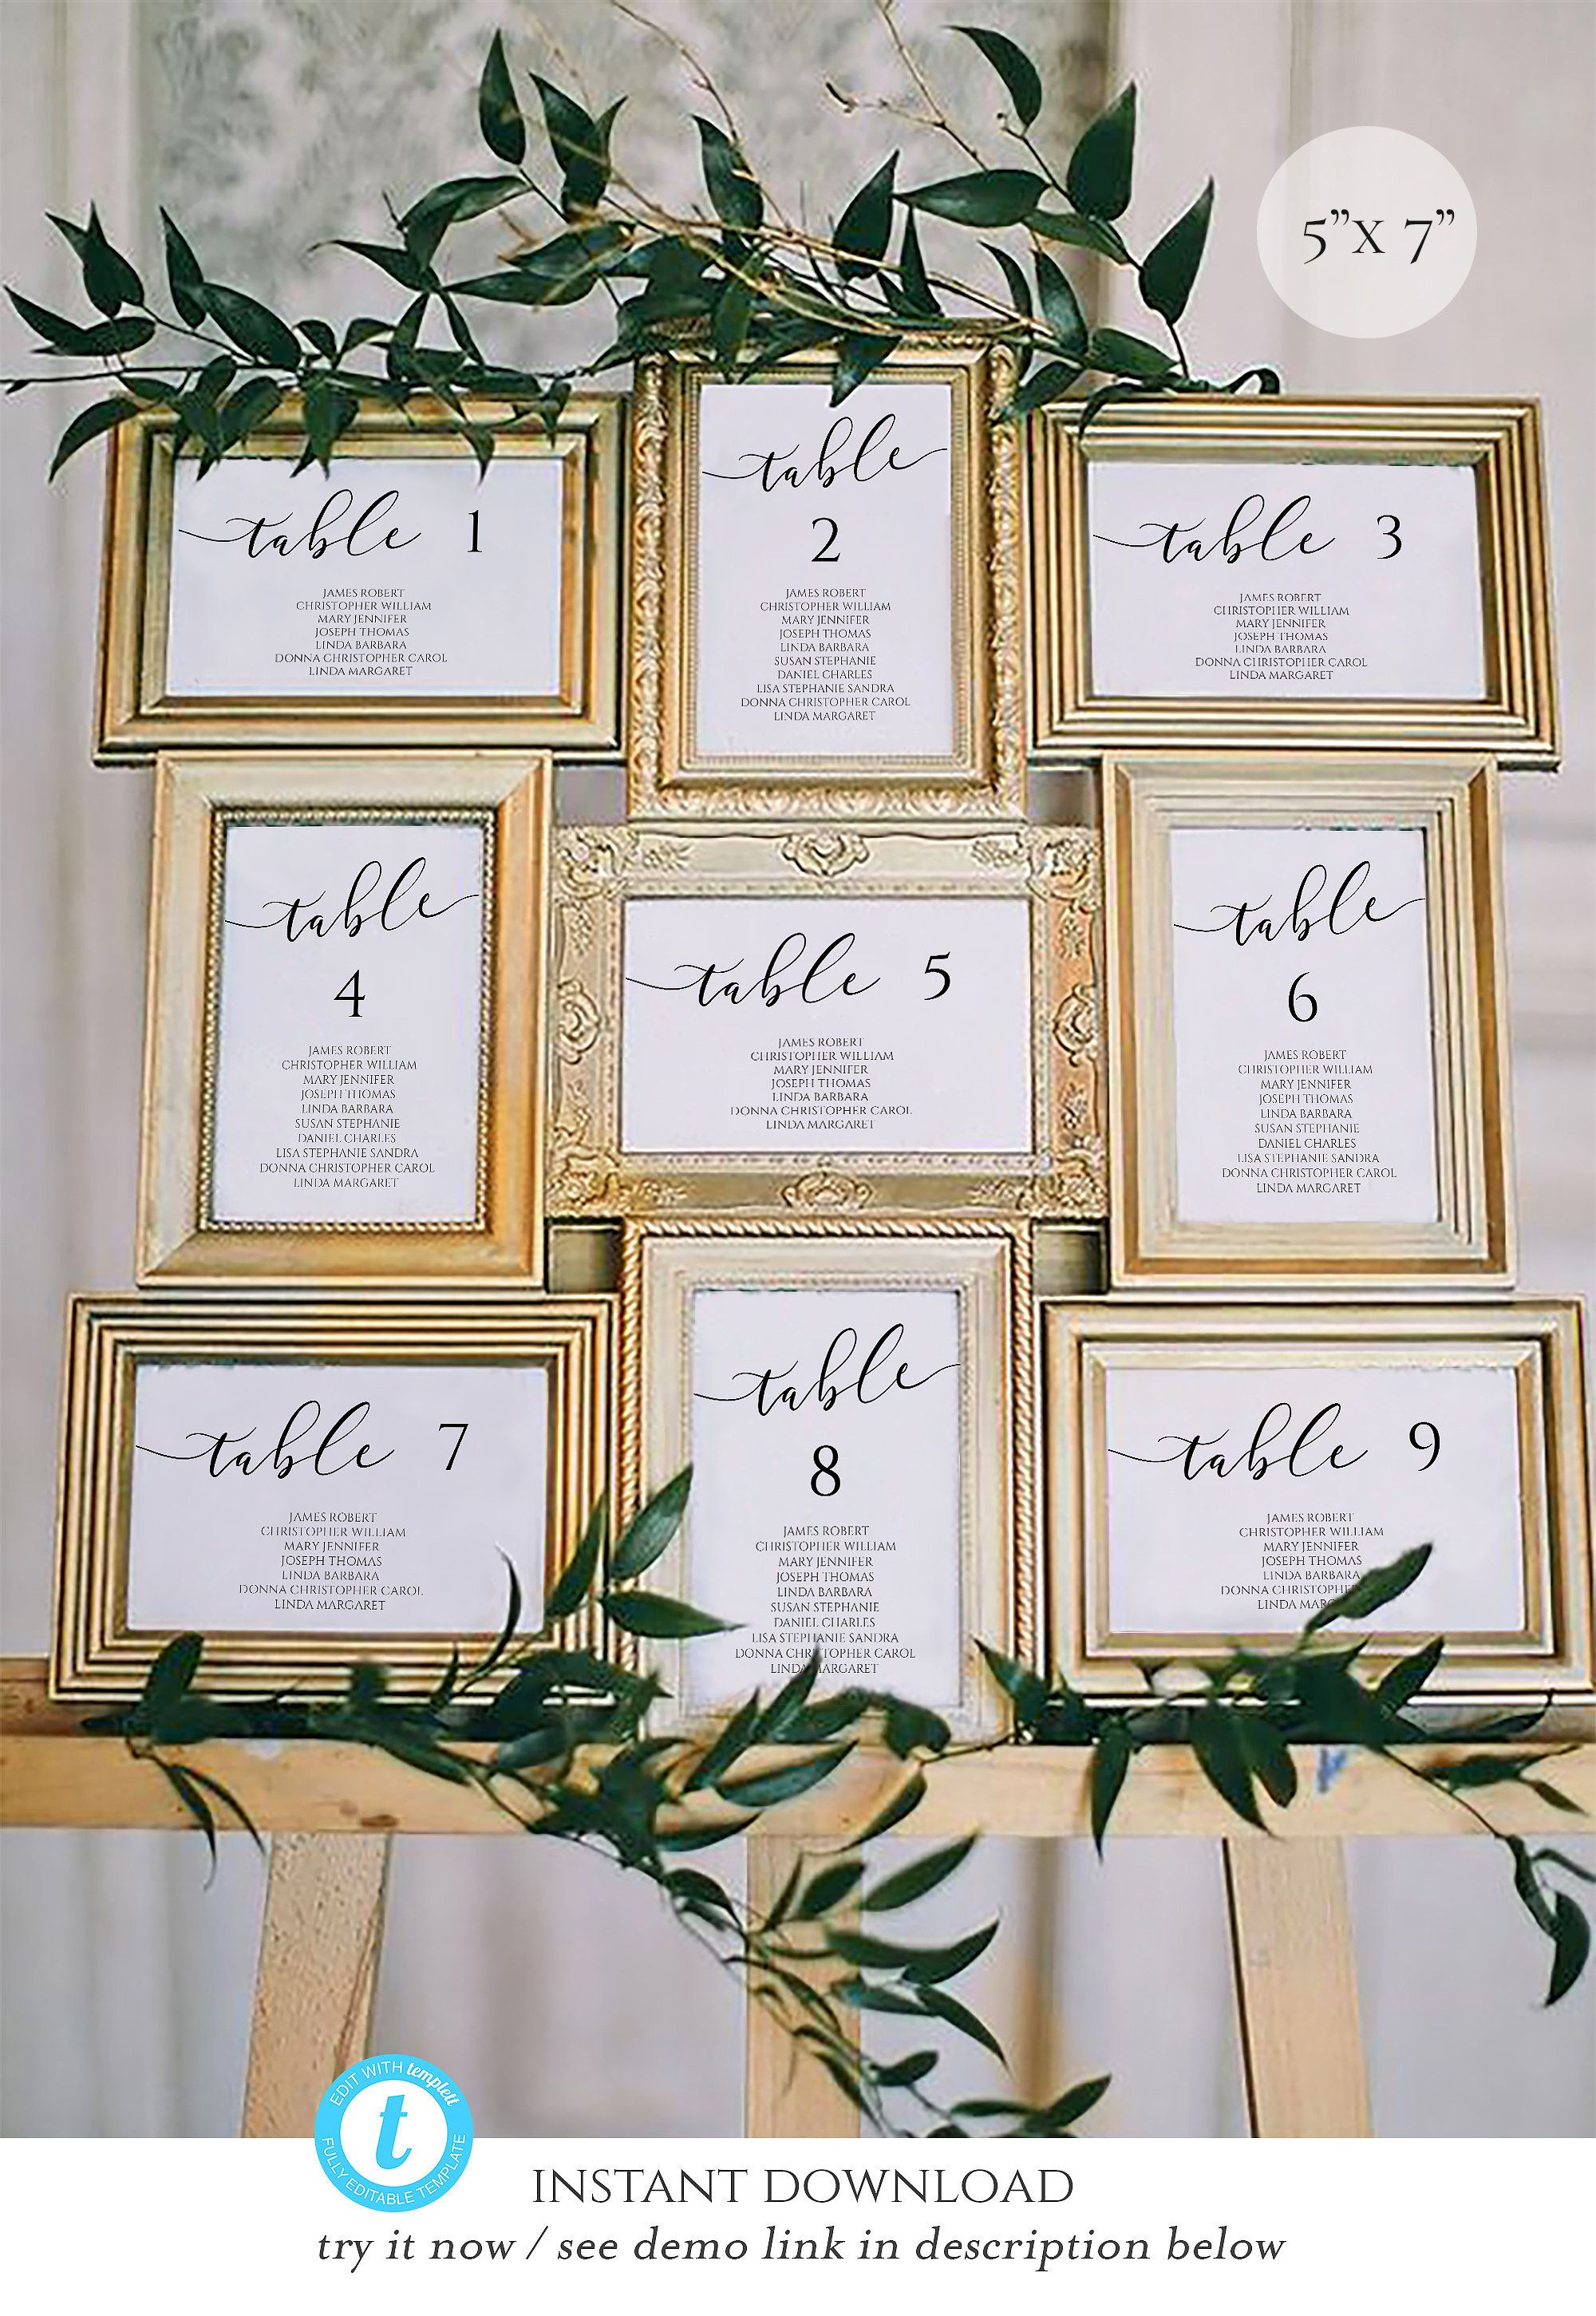 5x7 Wedding Seating Chart Template Calligraphy Table Seating Etsy Seating Chart Wedding Seating Plan Wedding Wedding Reception Seating